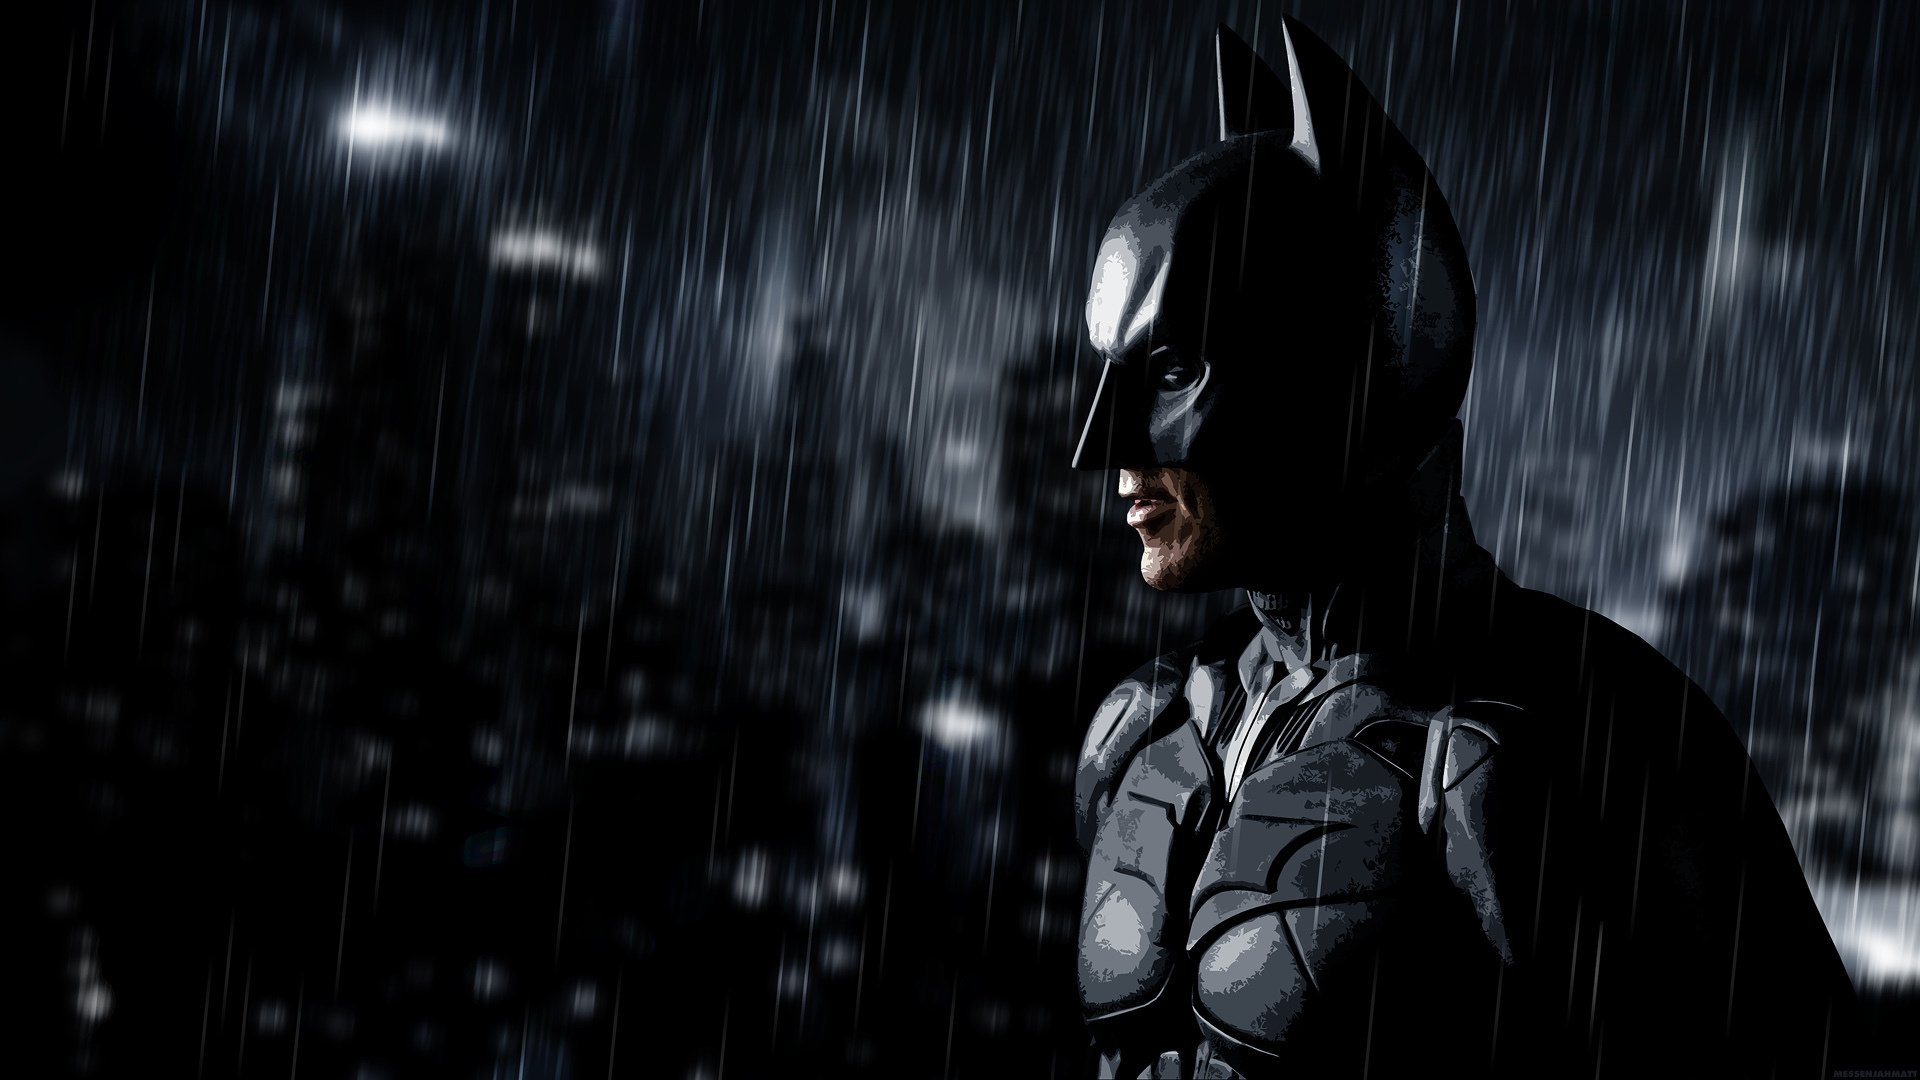 215 The Dark Knight Rises HD Wallpapers | Background Images